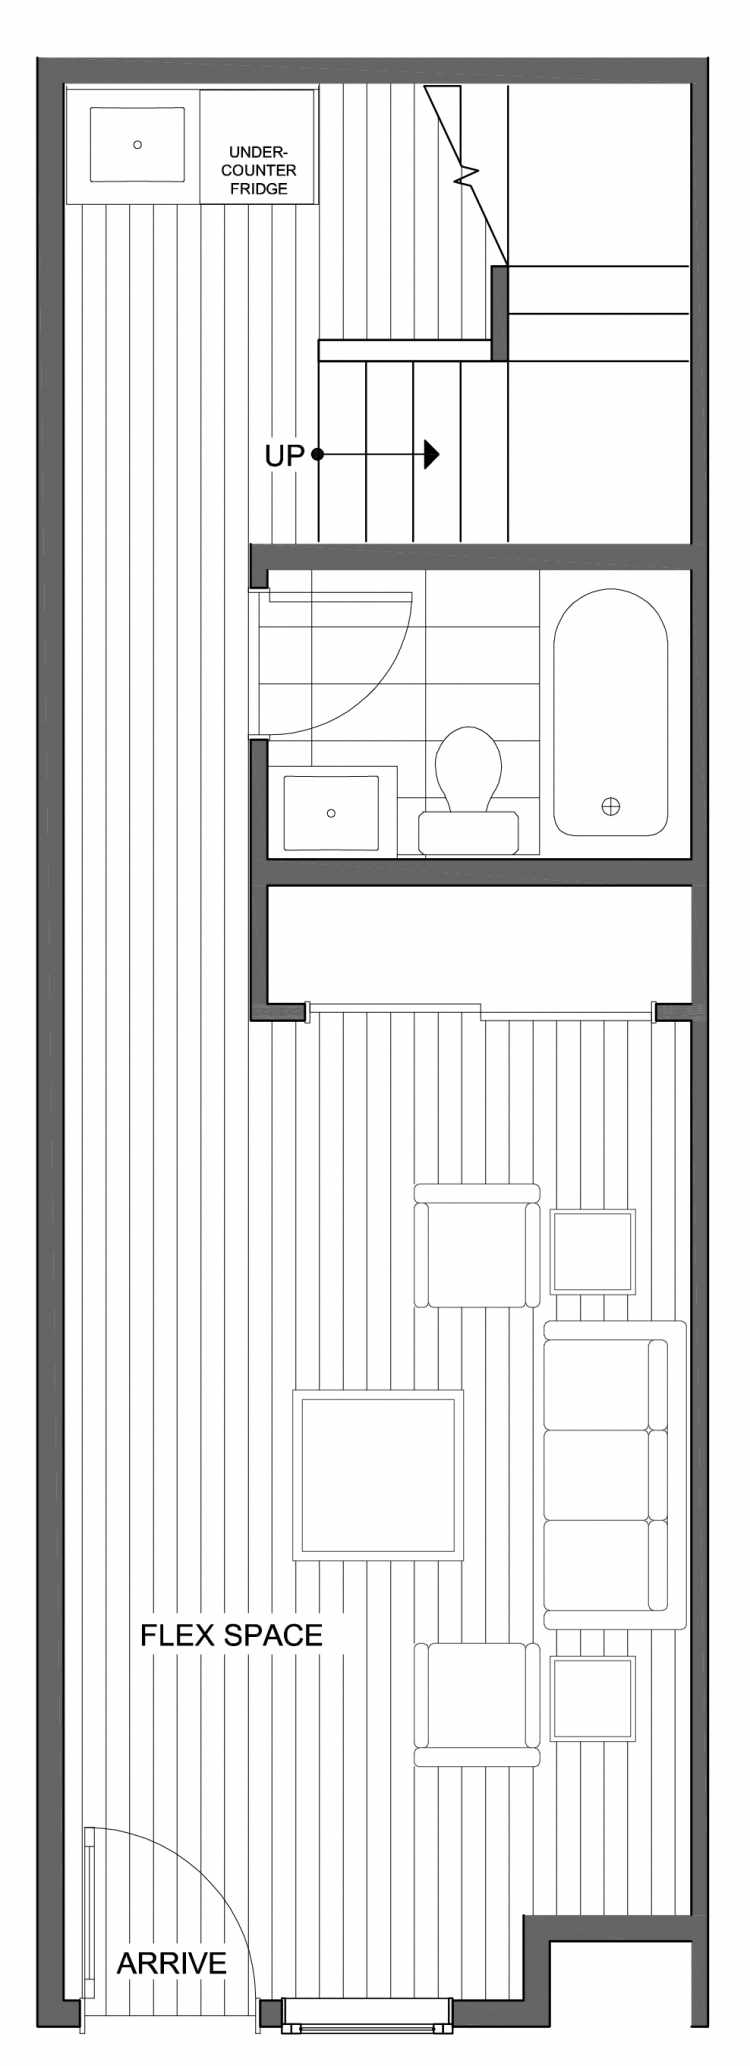 First Floor Plan of 802 N 46th St, One of the Nino 15 West Townhomes in Fremont by Isola Homes